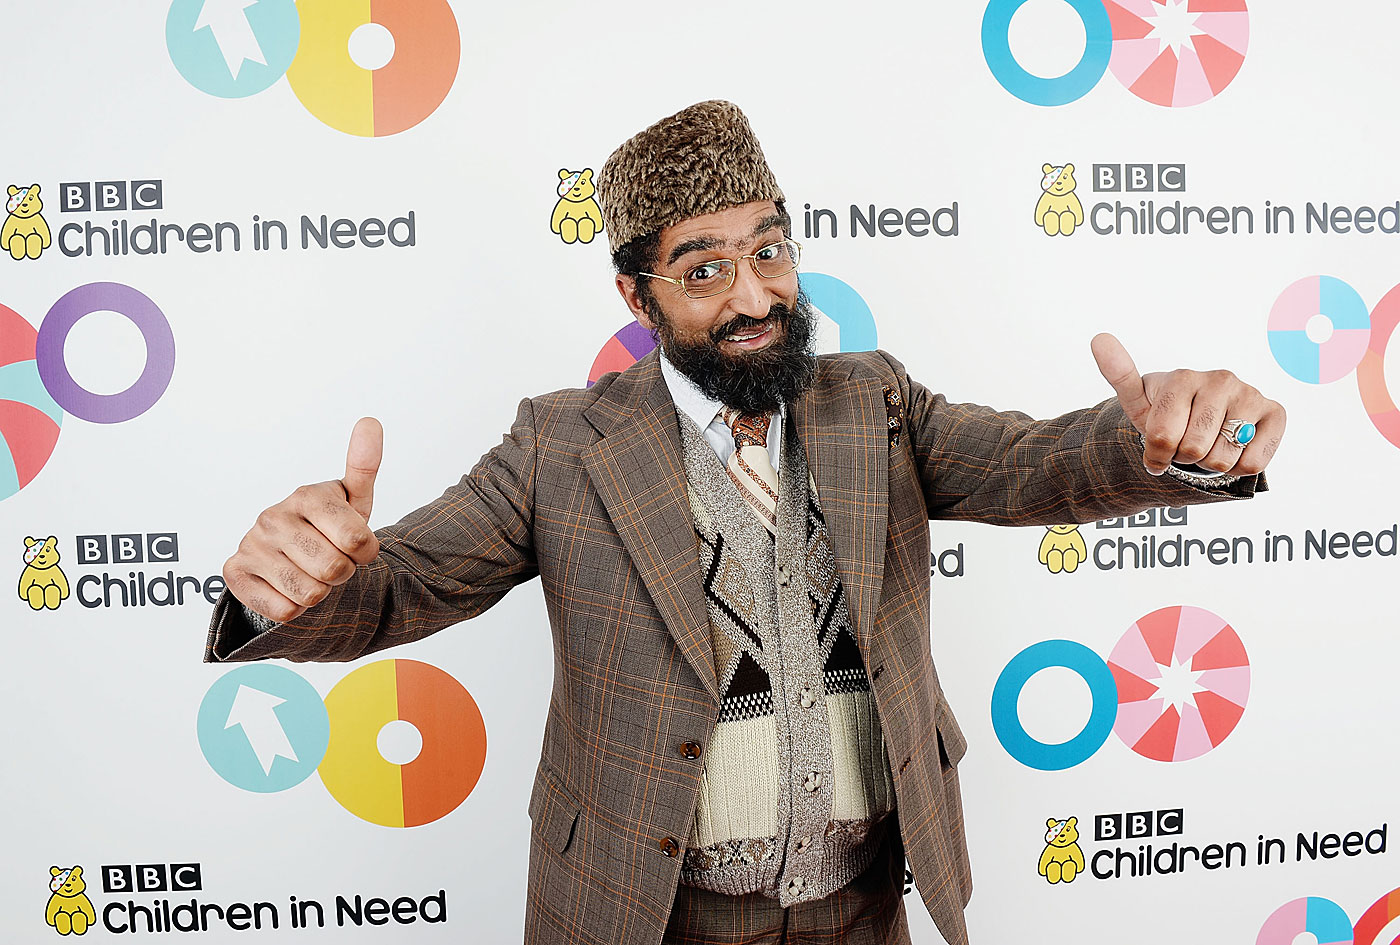 Sparkhill found its way into popular culture via the BBC sitcom <i>Citizen Khan</i>, on which the eponymous character is played by Adil Ray